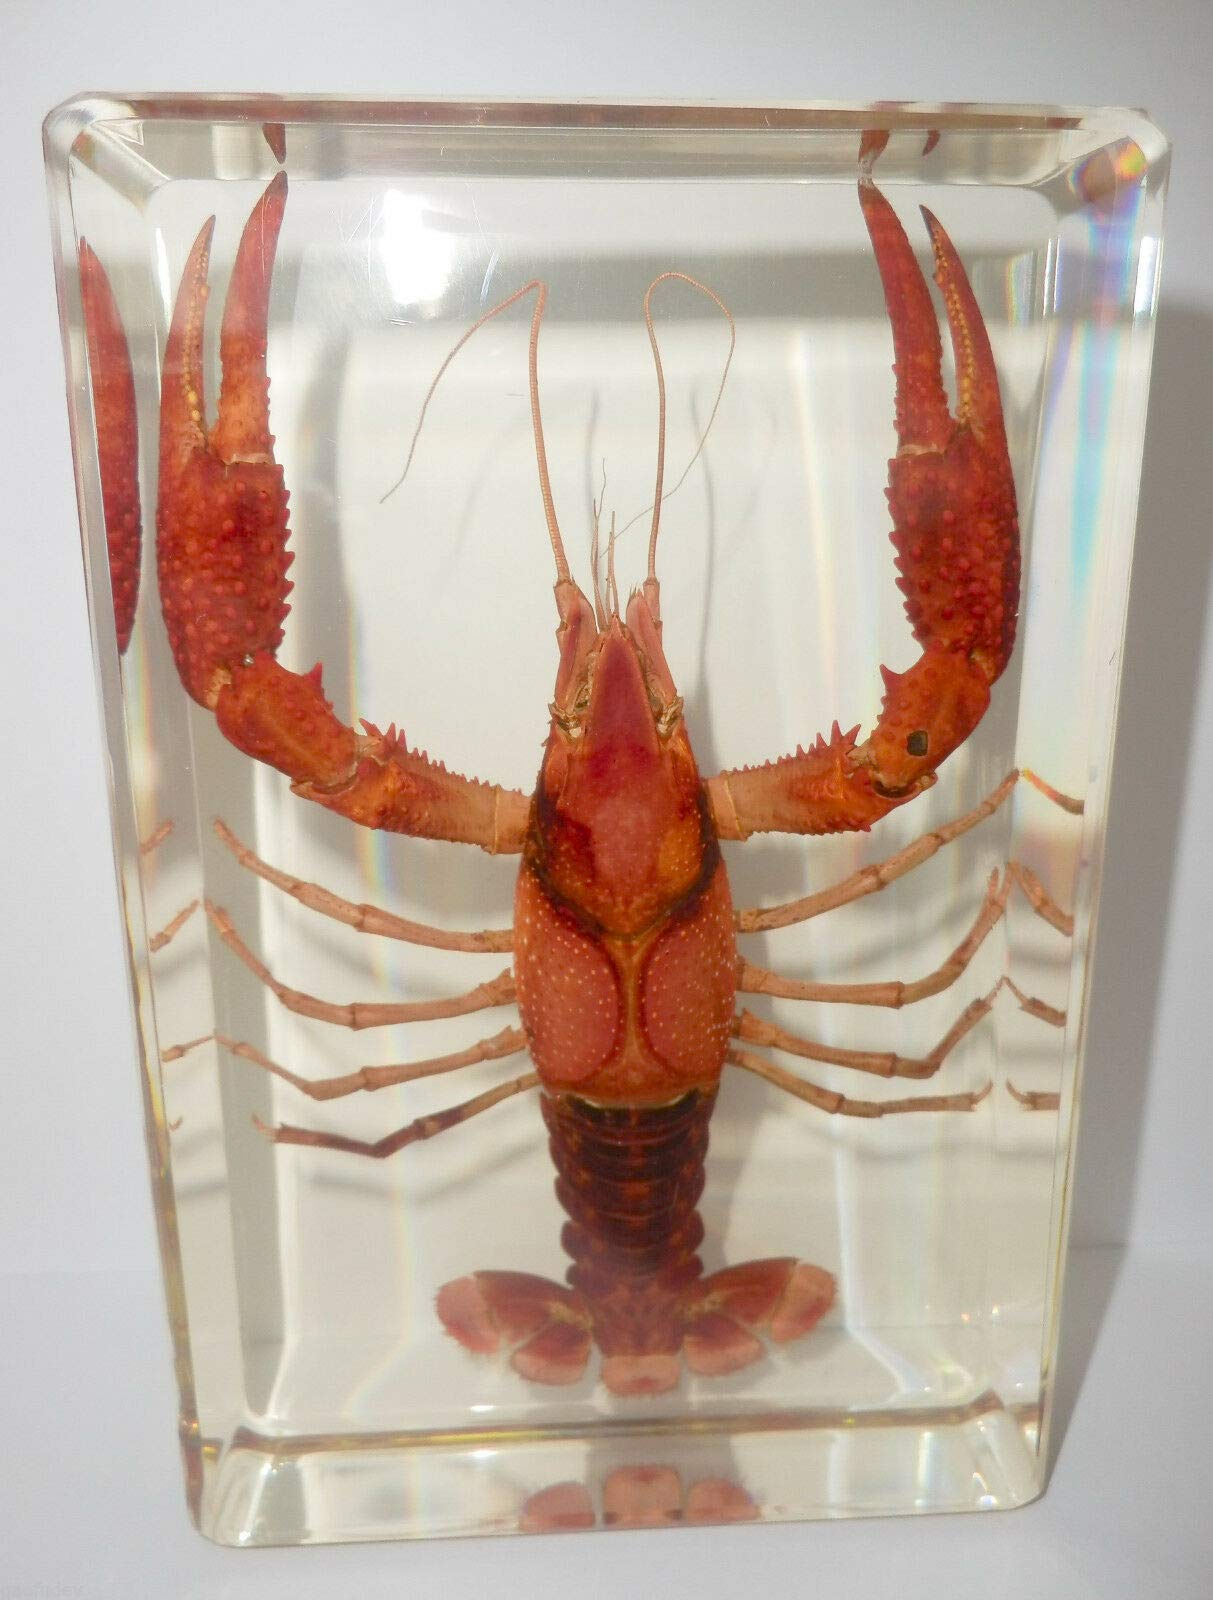 Siam Insects Large Red Lobster Freshwater Crayfish Clear Block Education Animal Specimen